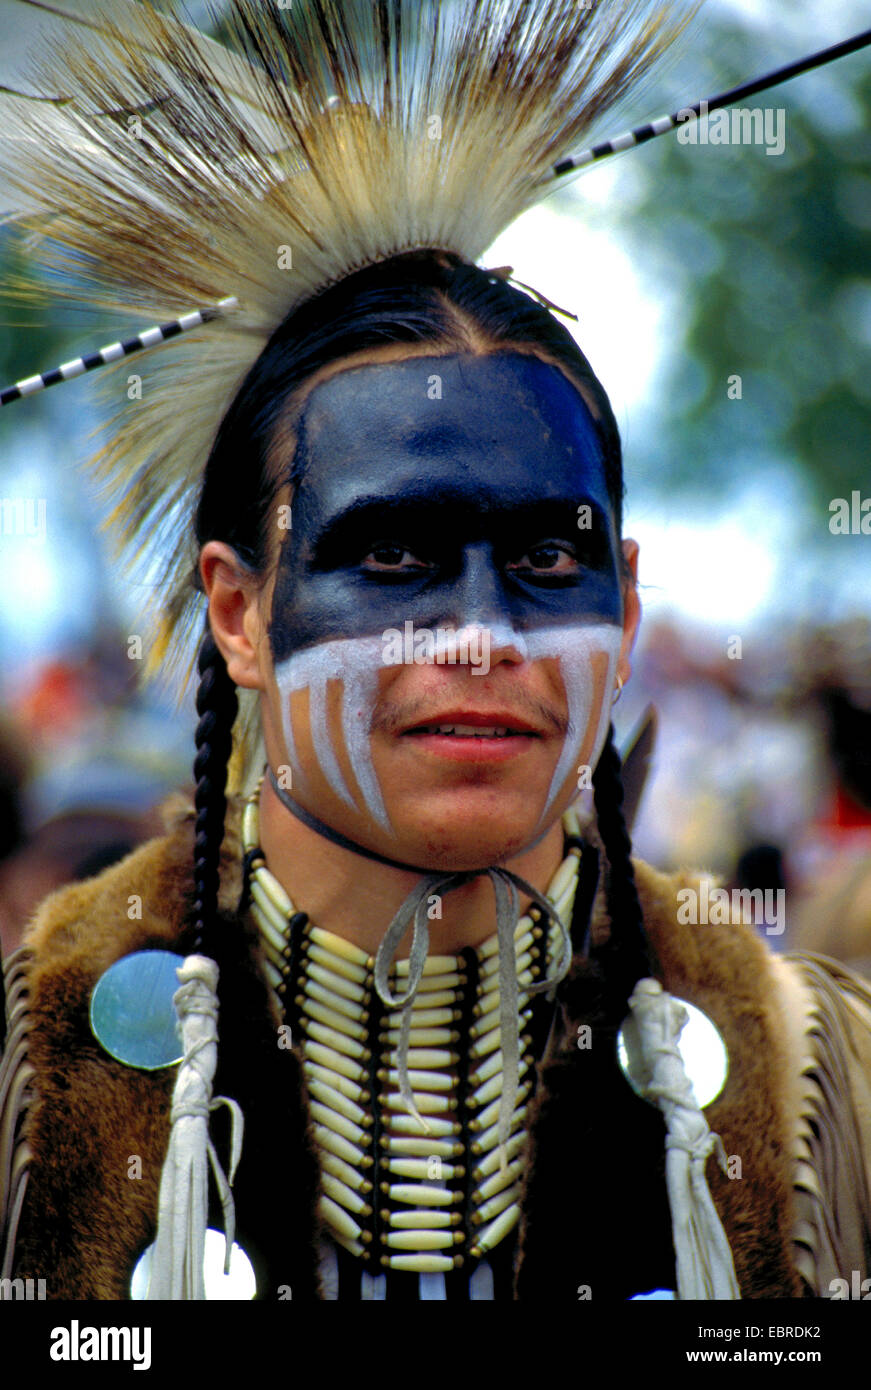 Face Painting Images For Boys